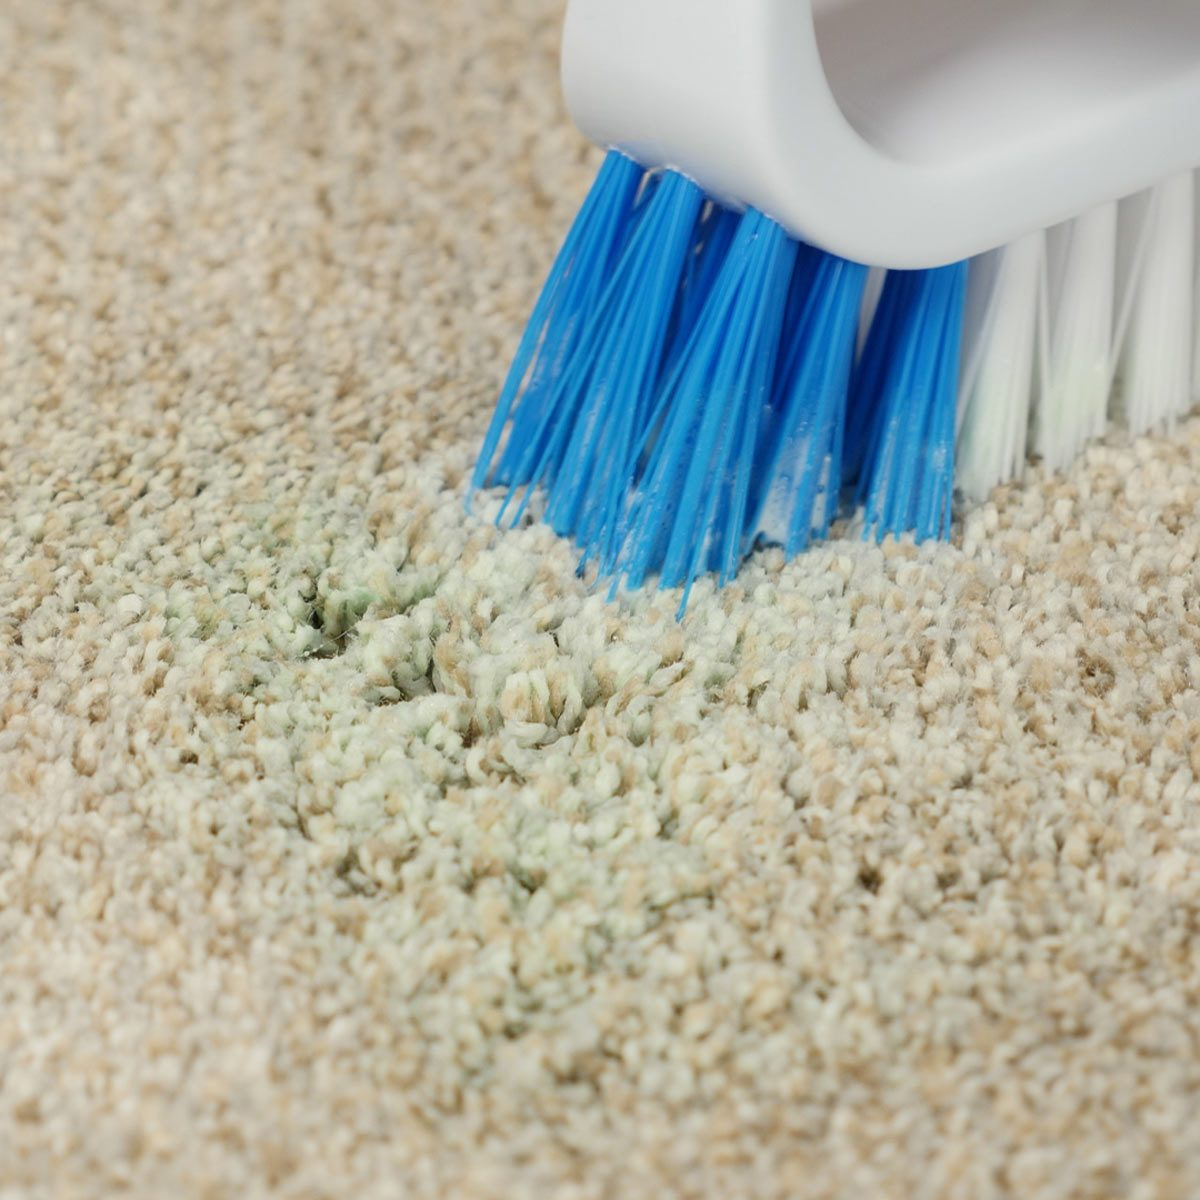 scrub slime stain out of carpet